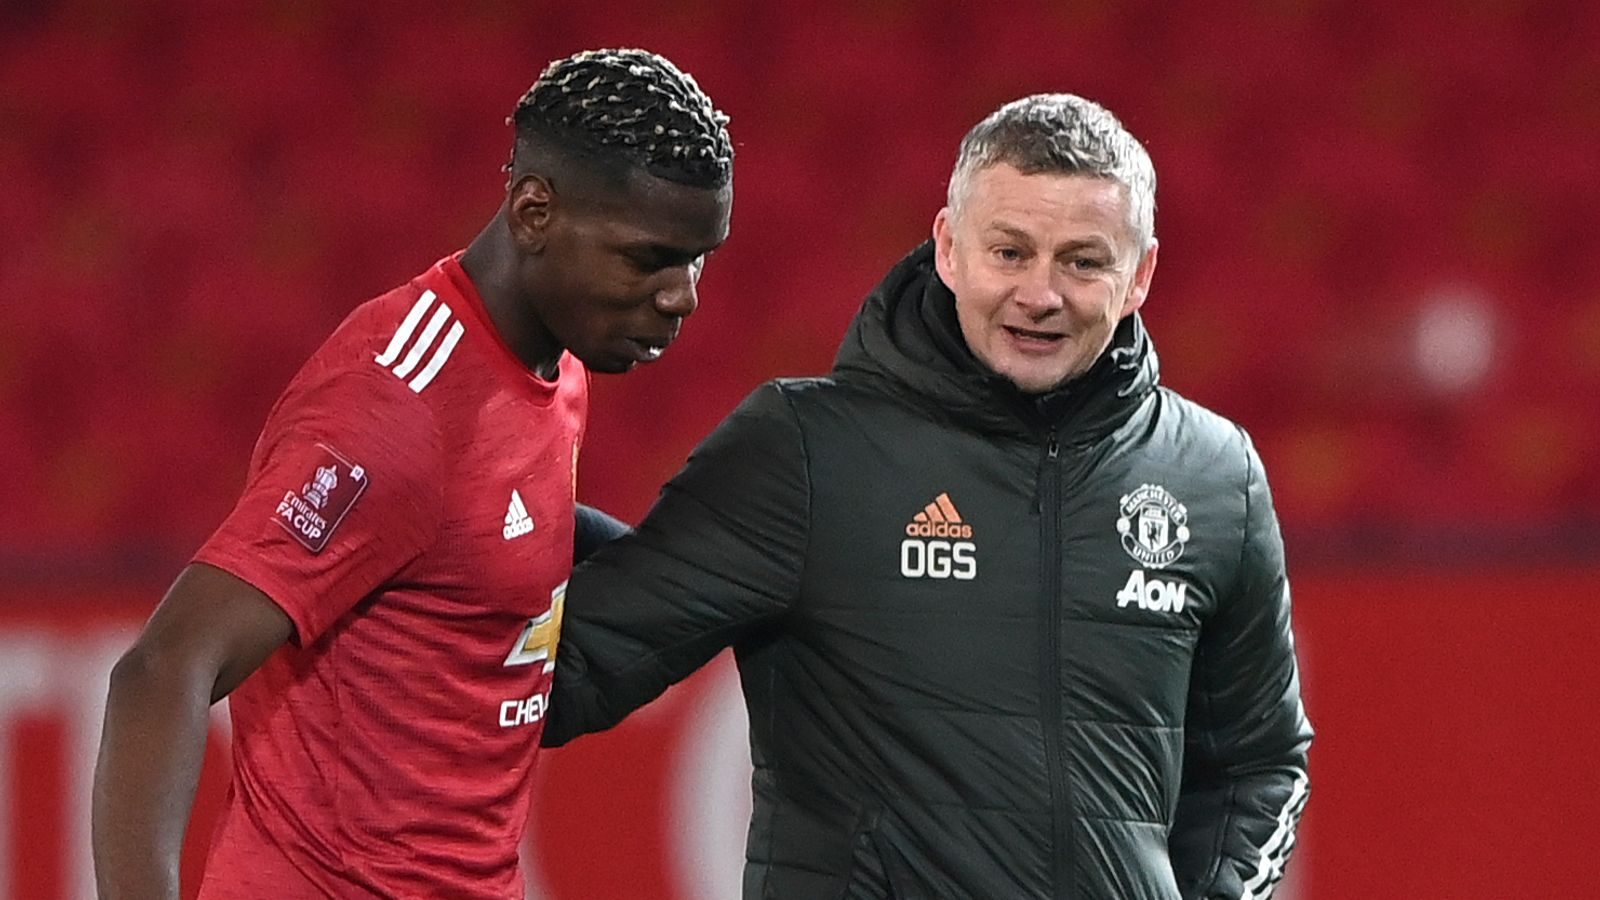 Paul Pogba: Manchester United have 'open dialogue' with midfielder over his future, says Ole Gunnar Solskjaer